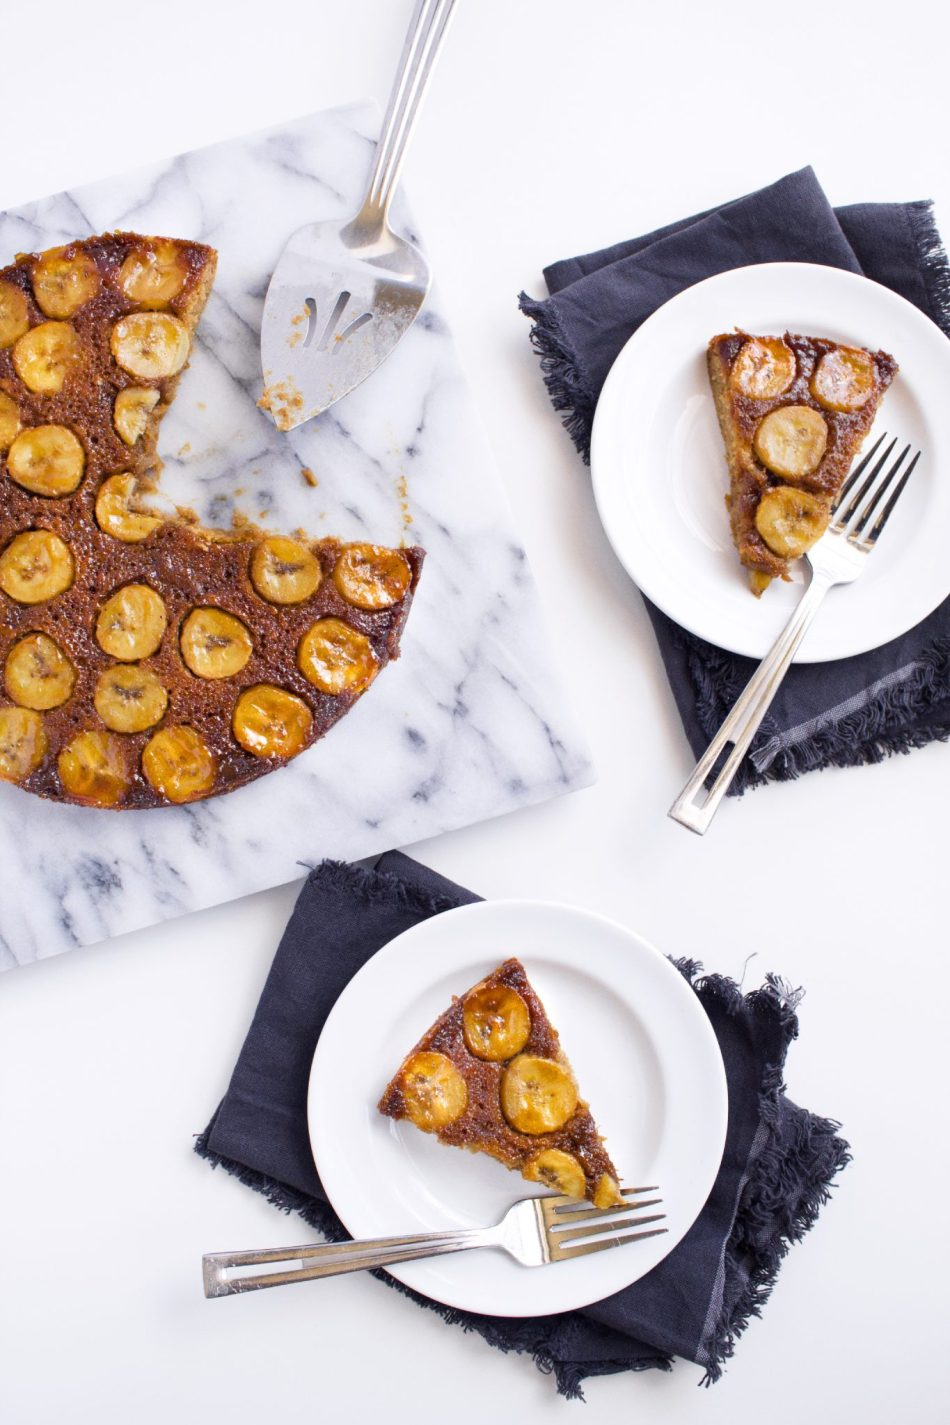 Salted Caramel Banana Upside Down Cake | Gluten, dairy, and refined sugar free.